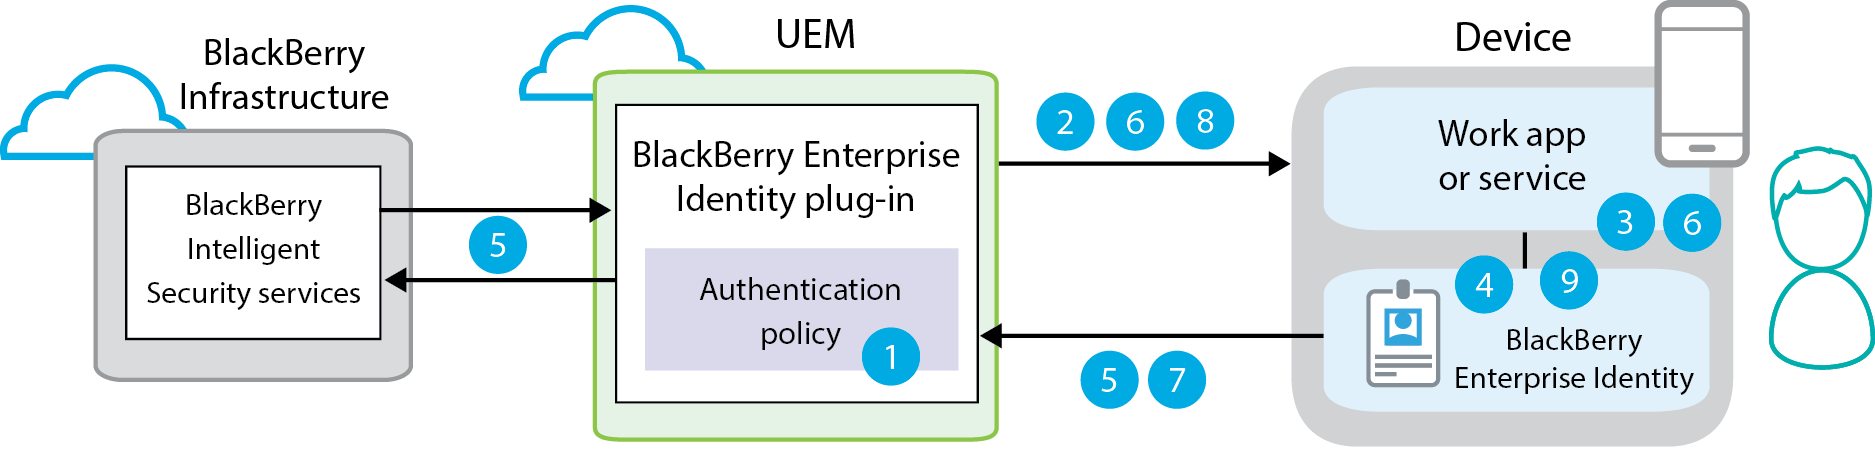 This diagram demonstrates each step of the secure authentication workflow for BlackBerry Enterprise Identity and BlackBerry Intelligent Security